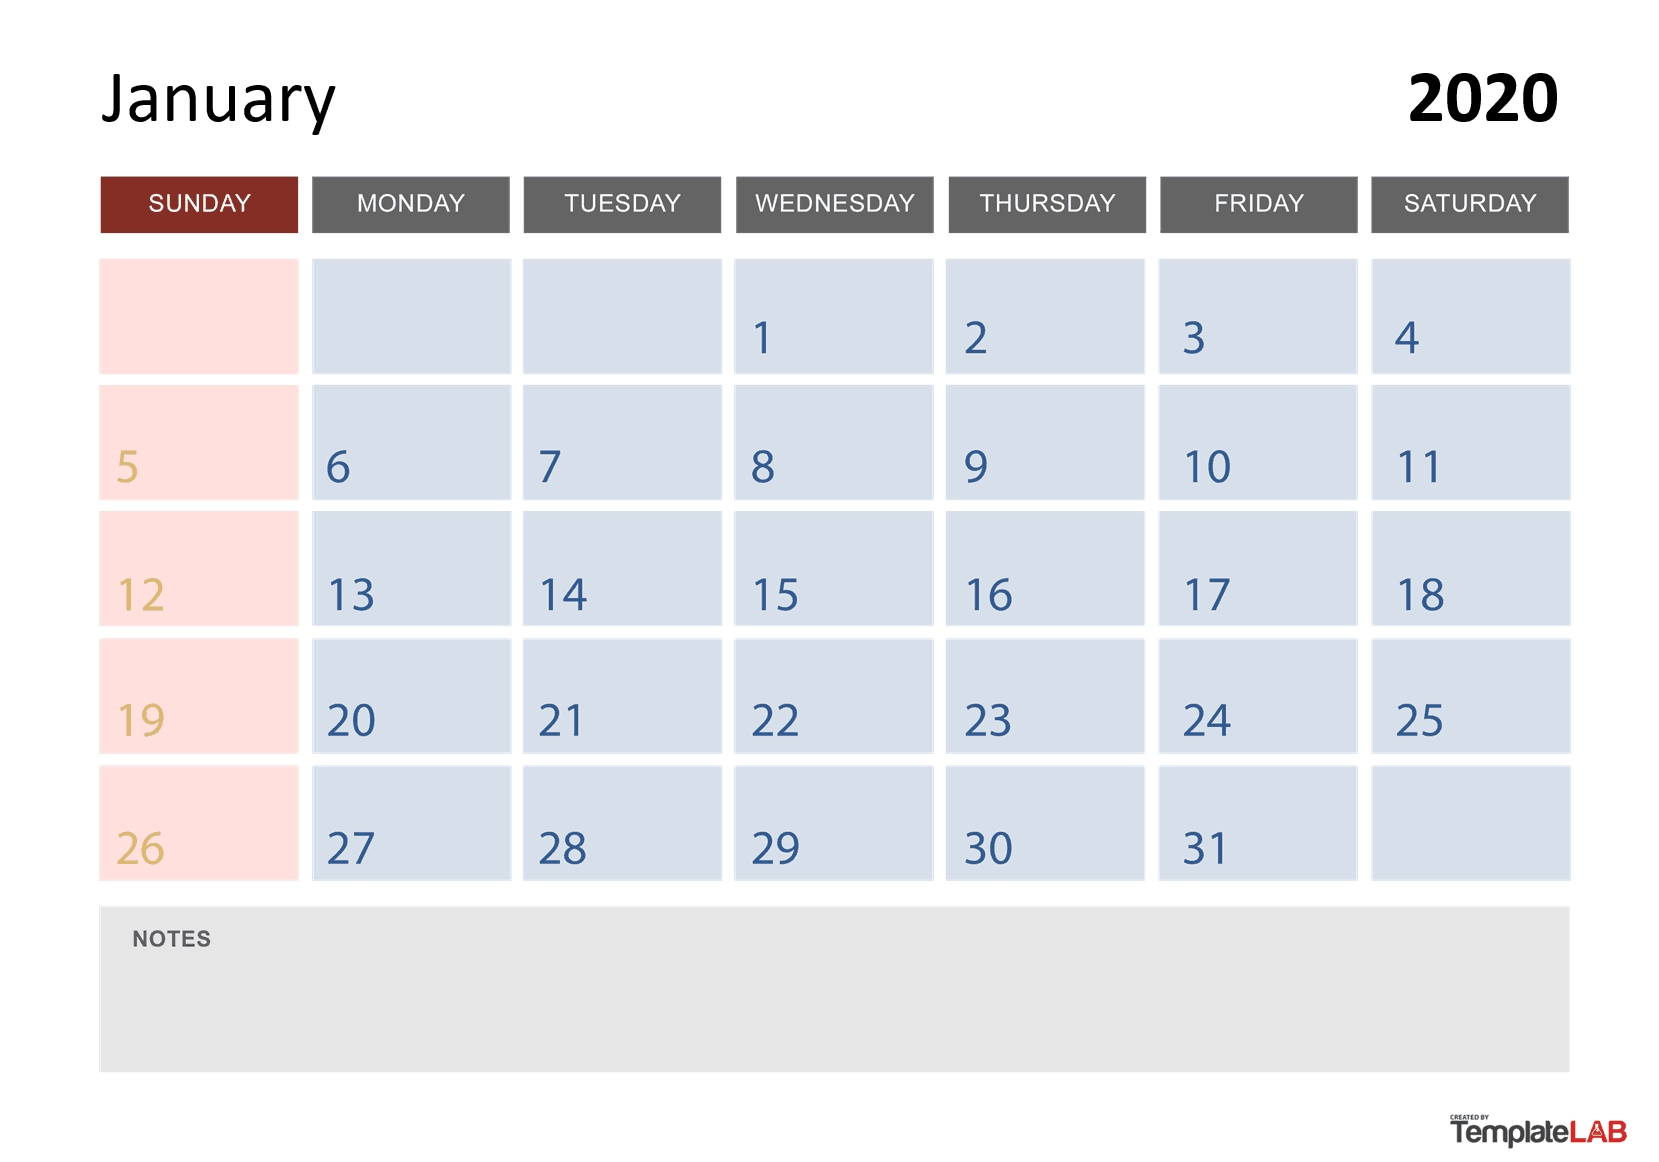 2020 Printable Calendars [Monthly, With Holidays, Yearly] ᐅ in 2020 Calendar With Space To Write